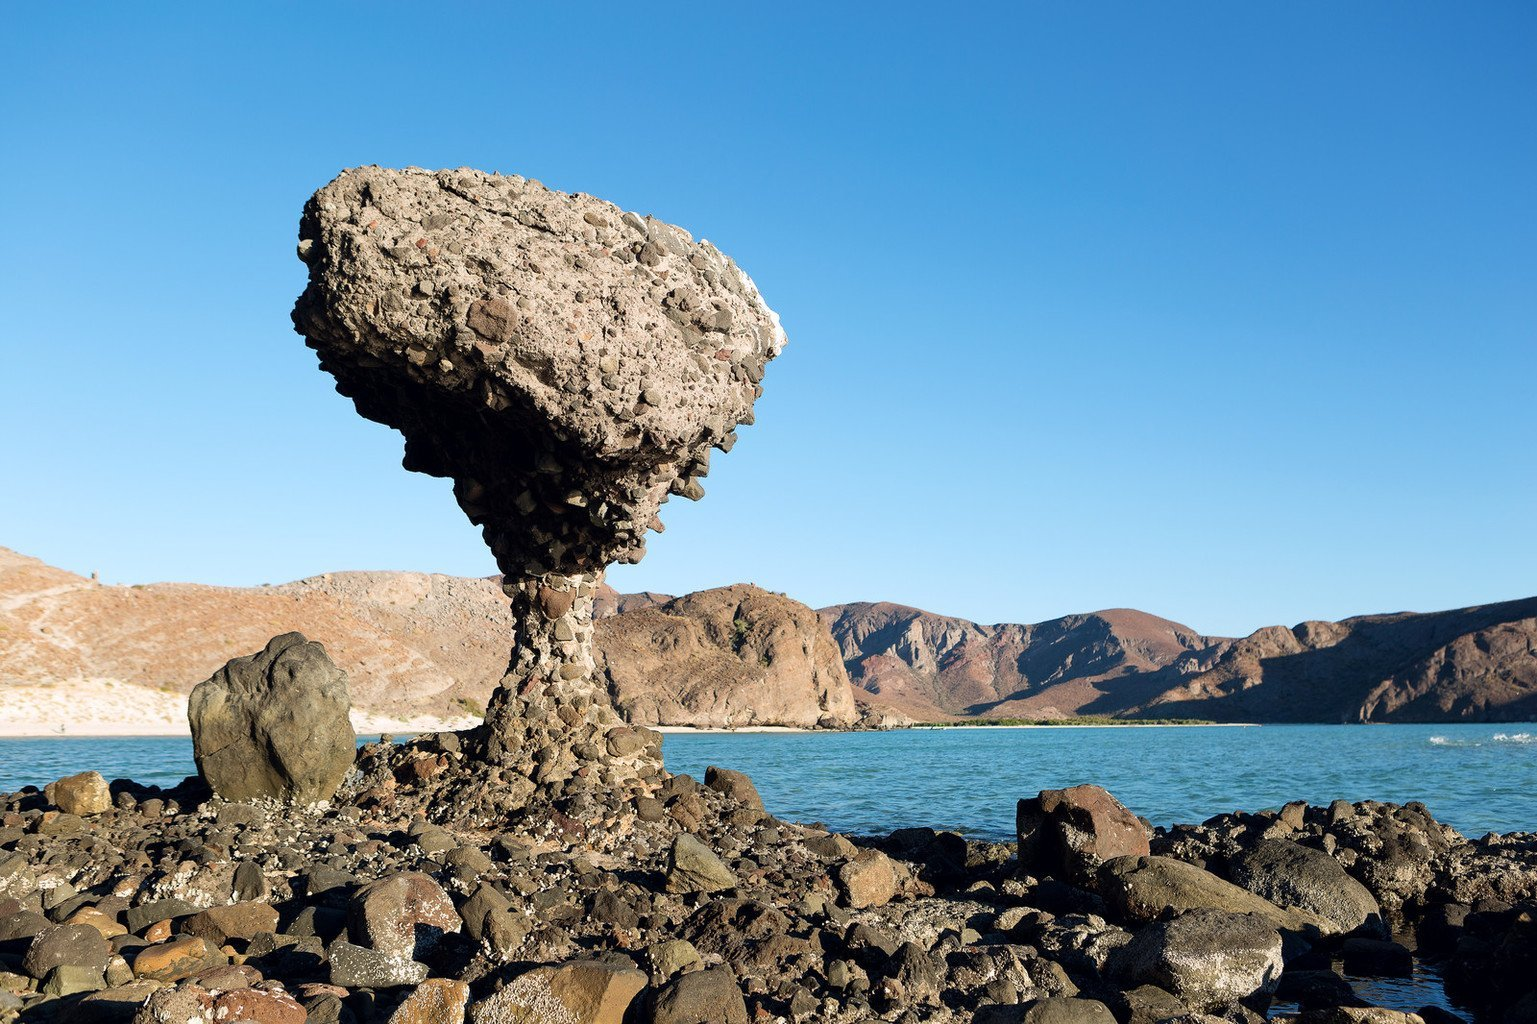 rock formation in la paz